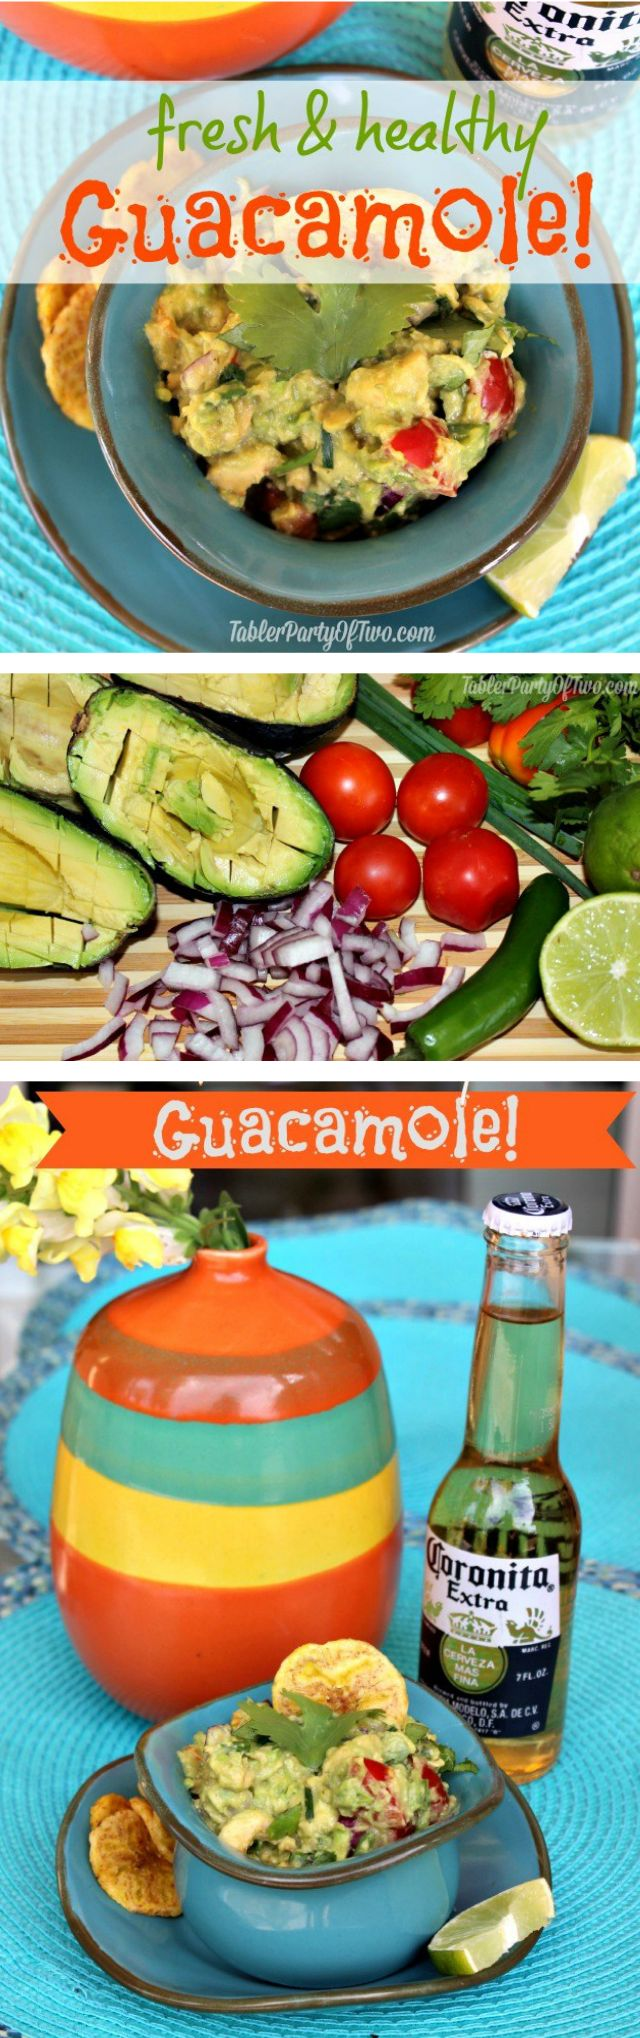 Fresh & Healthy Guacamole recipe- so delicious and full of nutrients! Perfect for any day of the week or a special party.